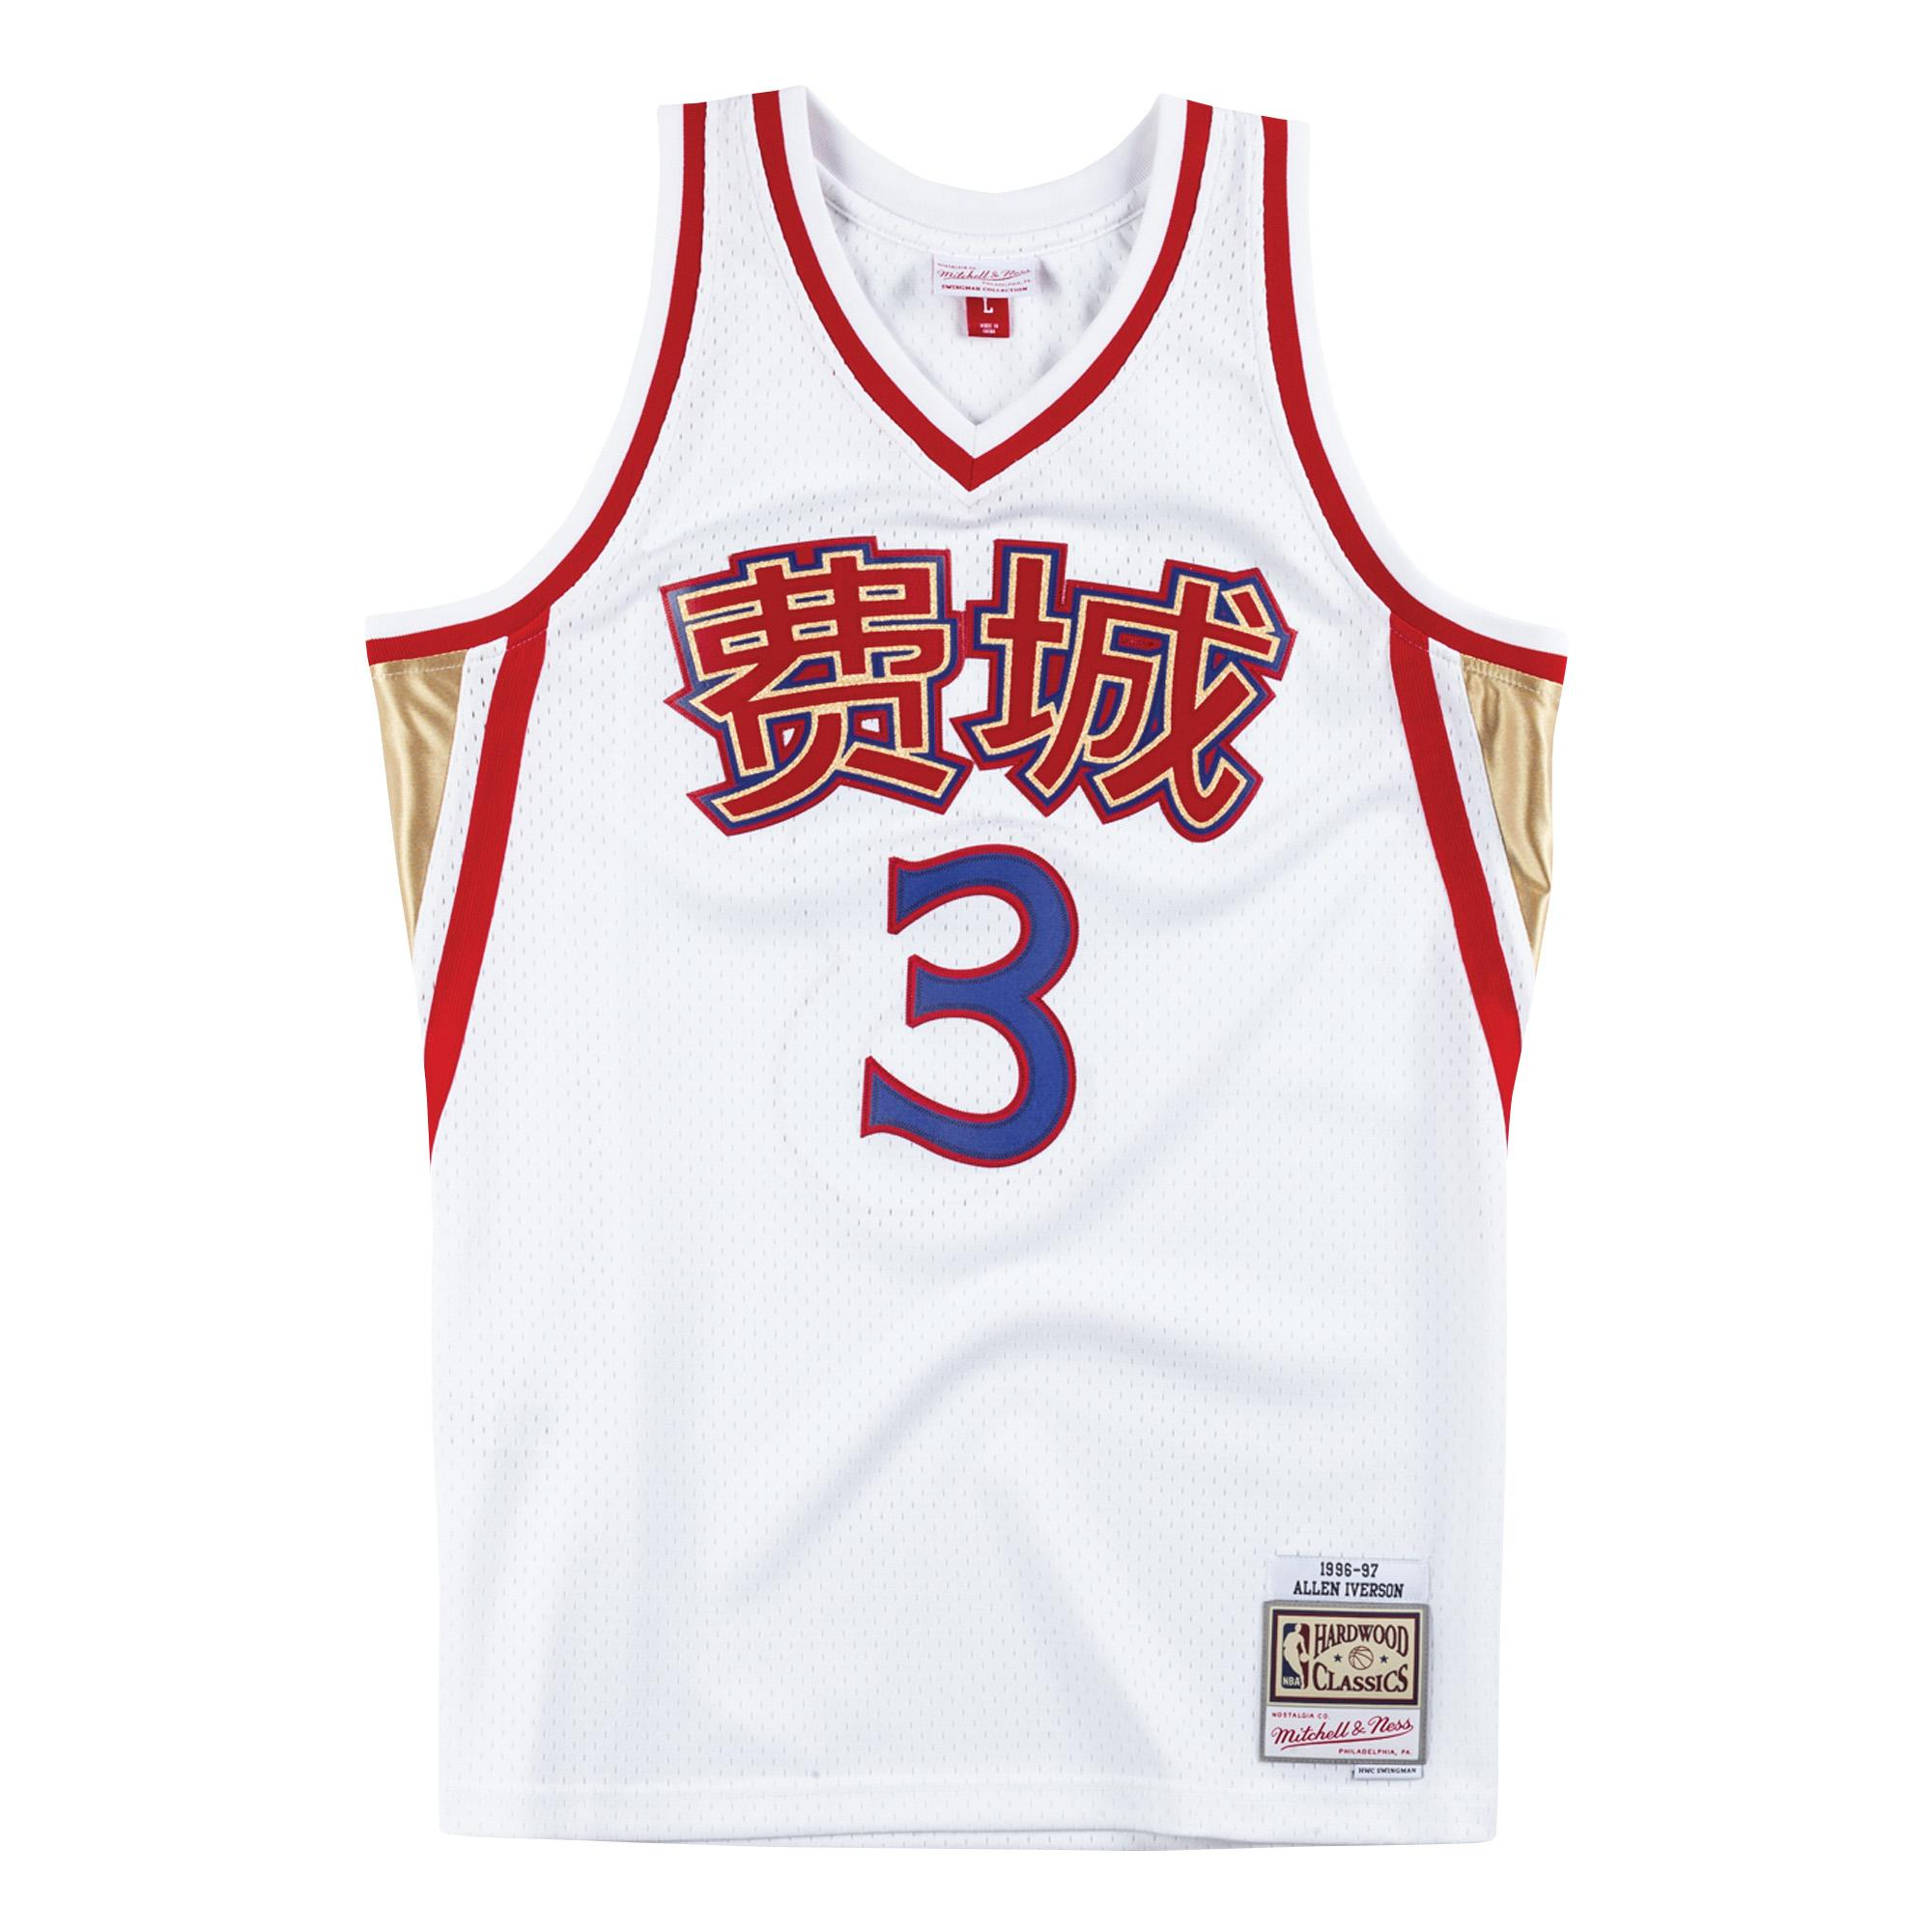 separation shoes f8bb9 44225 Mitchell & Ness | Chinese New Year Philadelphia 76ers ...